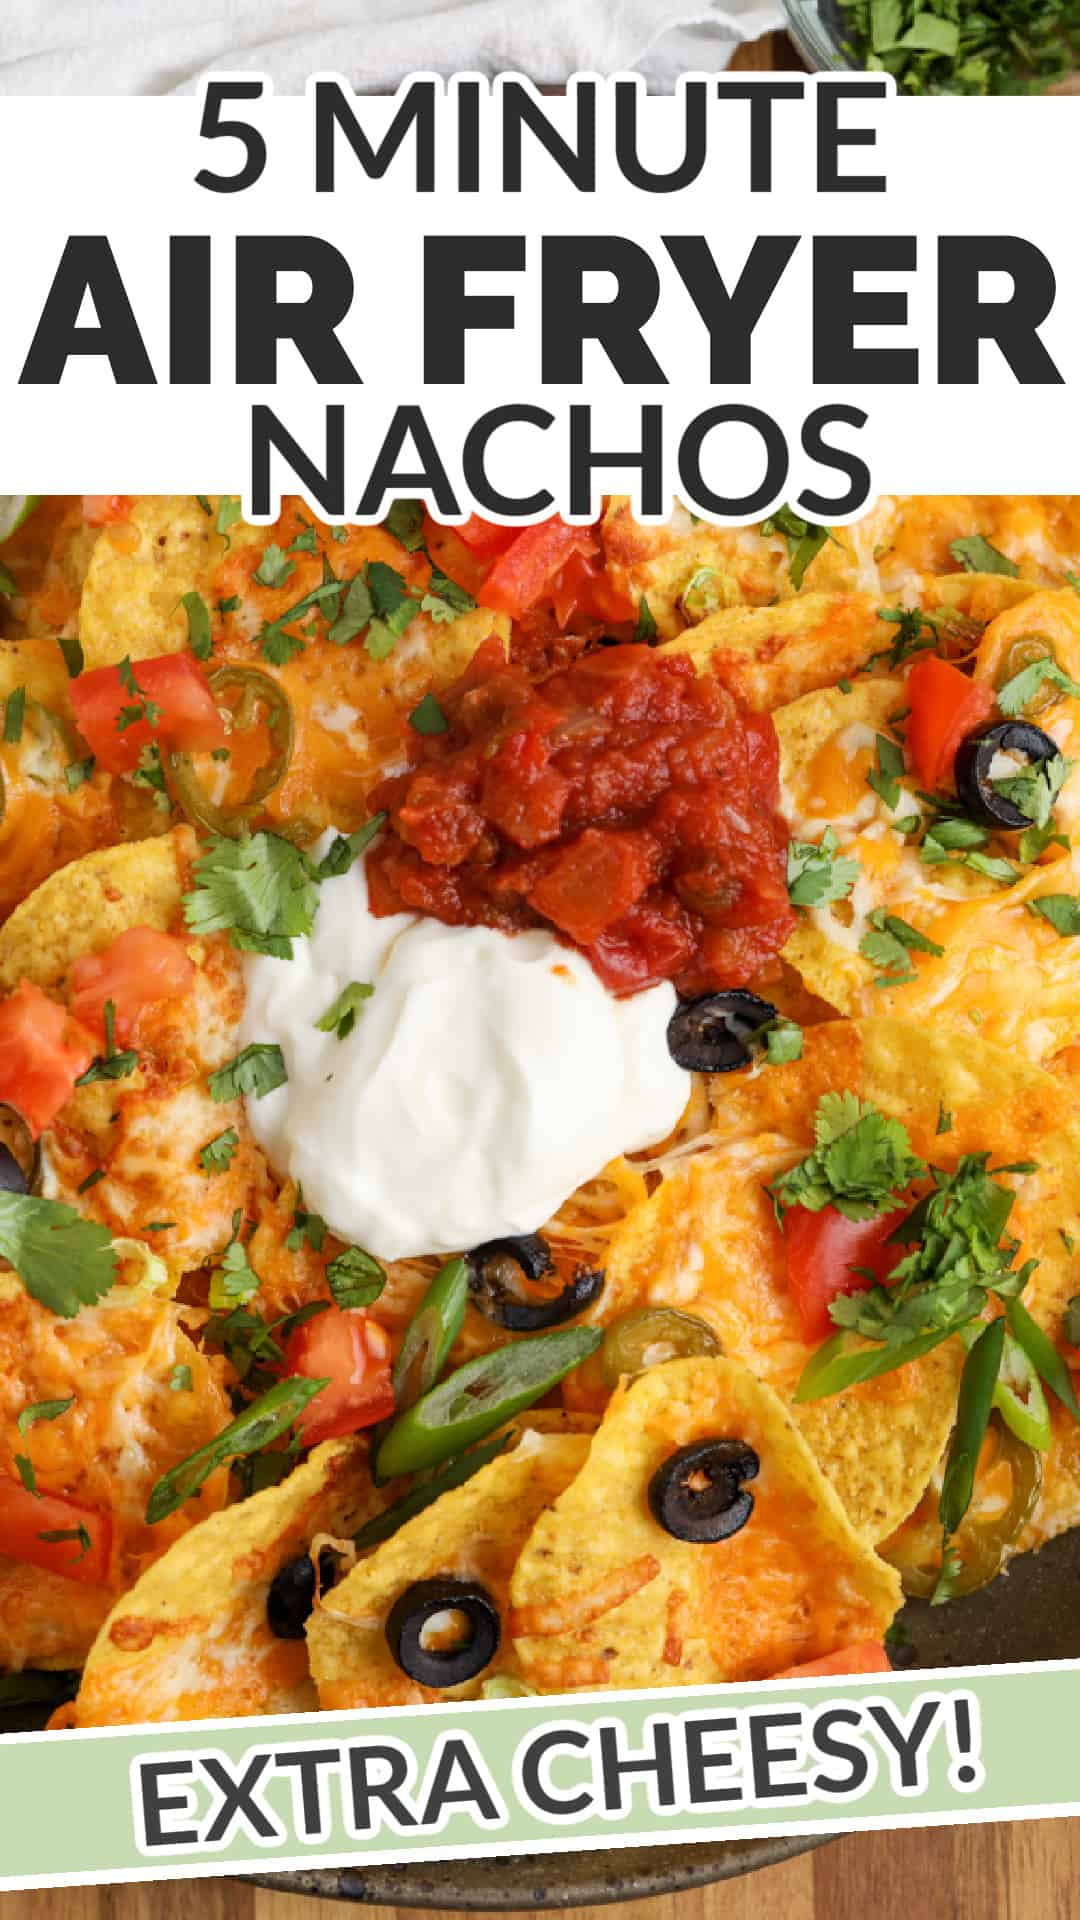 Air Fryer Nachos in the air fryer and plated with a title